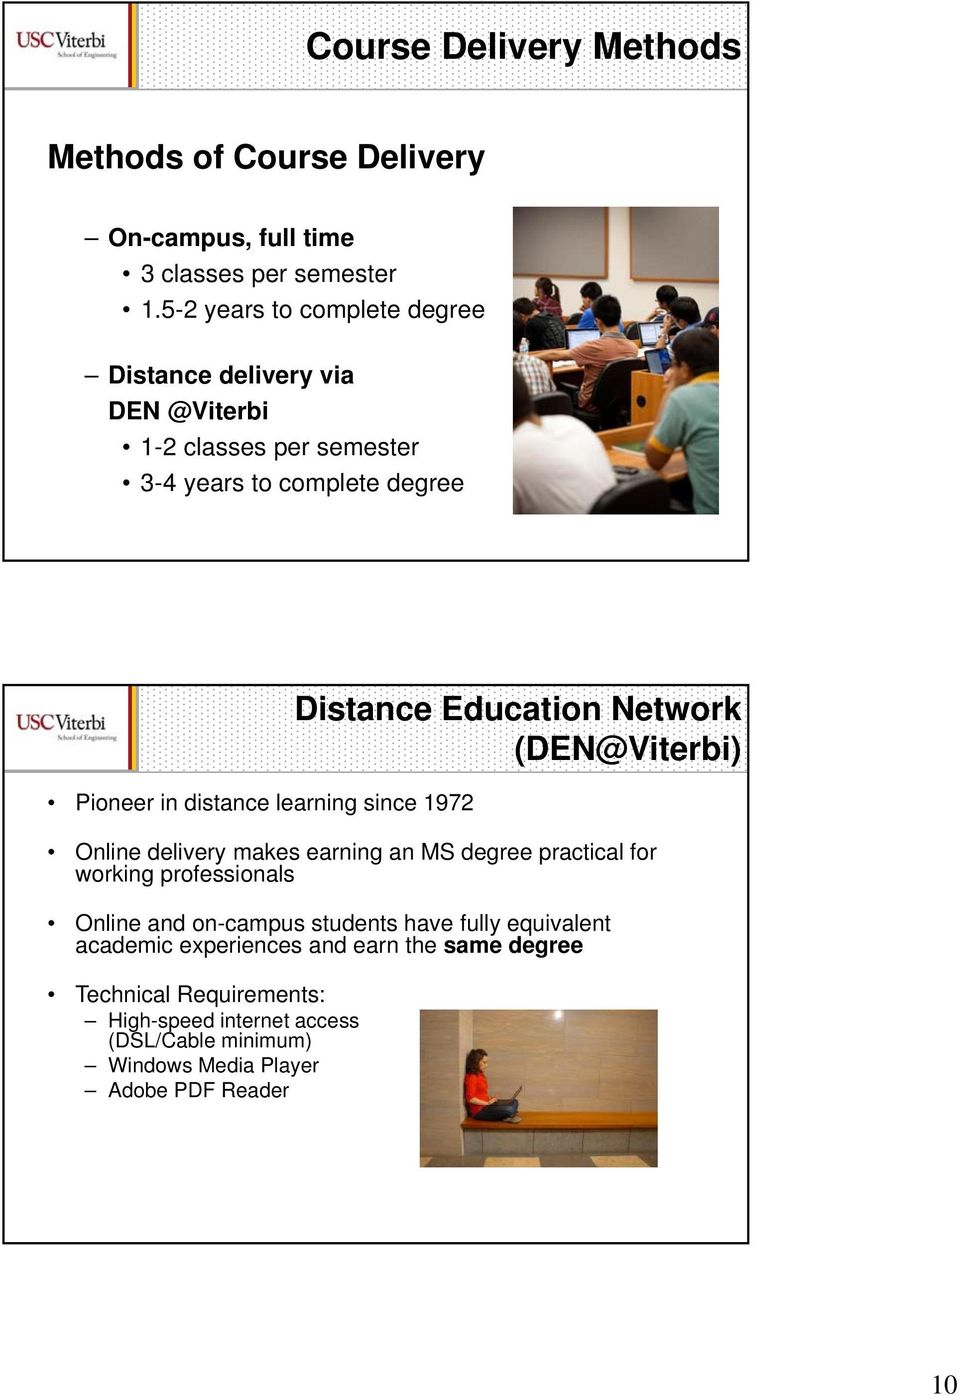 learning since 1972 Distance Education Network (DEN@Viterbi) Online delivery makes earning an MS degree practical for working professionals